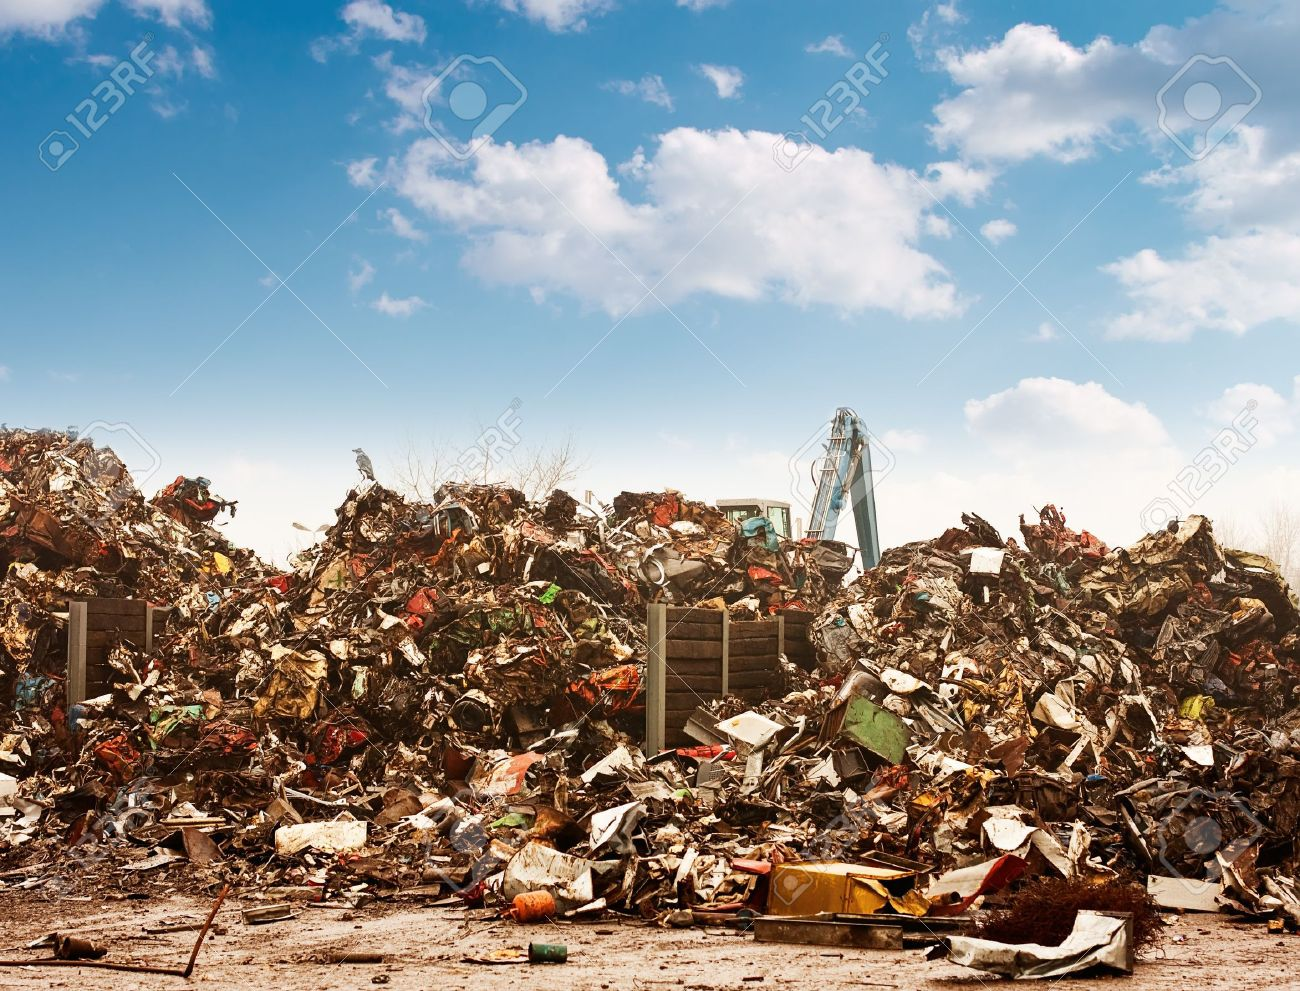 Car recycling to the dump. Stock Photo - 8179553